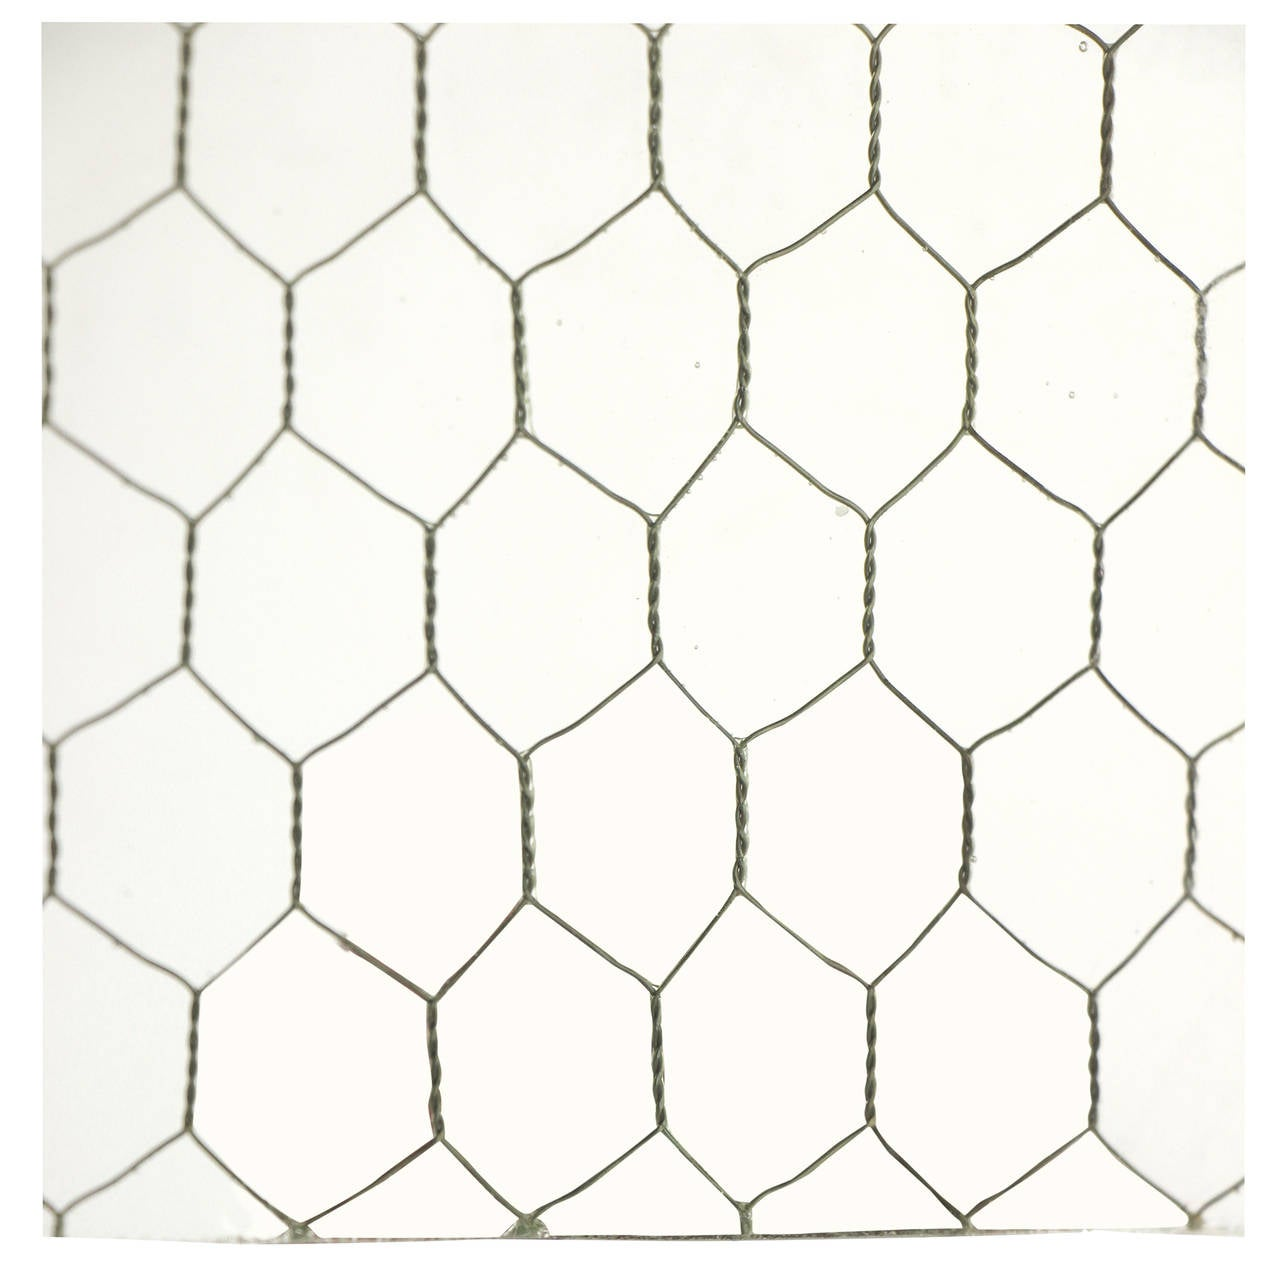 1920s \'Pebbled\' Vintage Chicken Wire Glass For Sale at 1stdibs